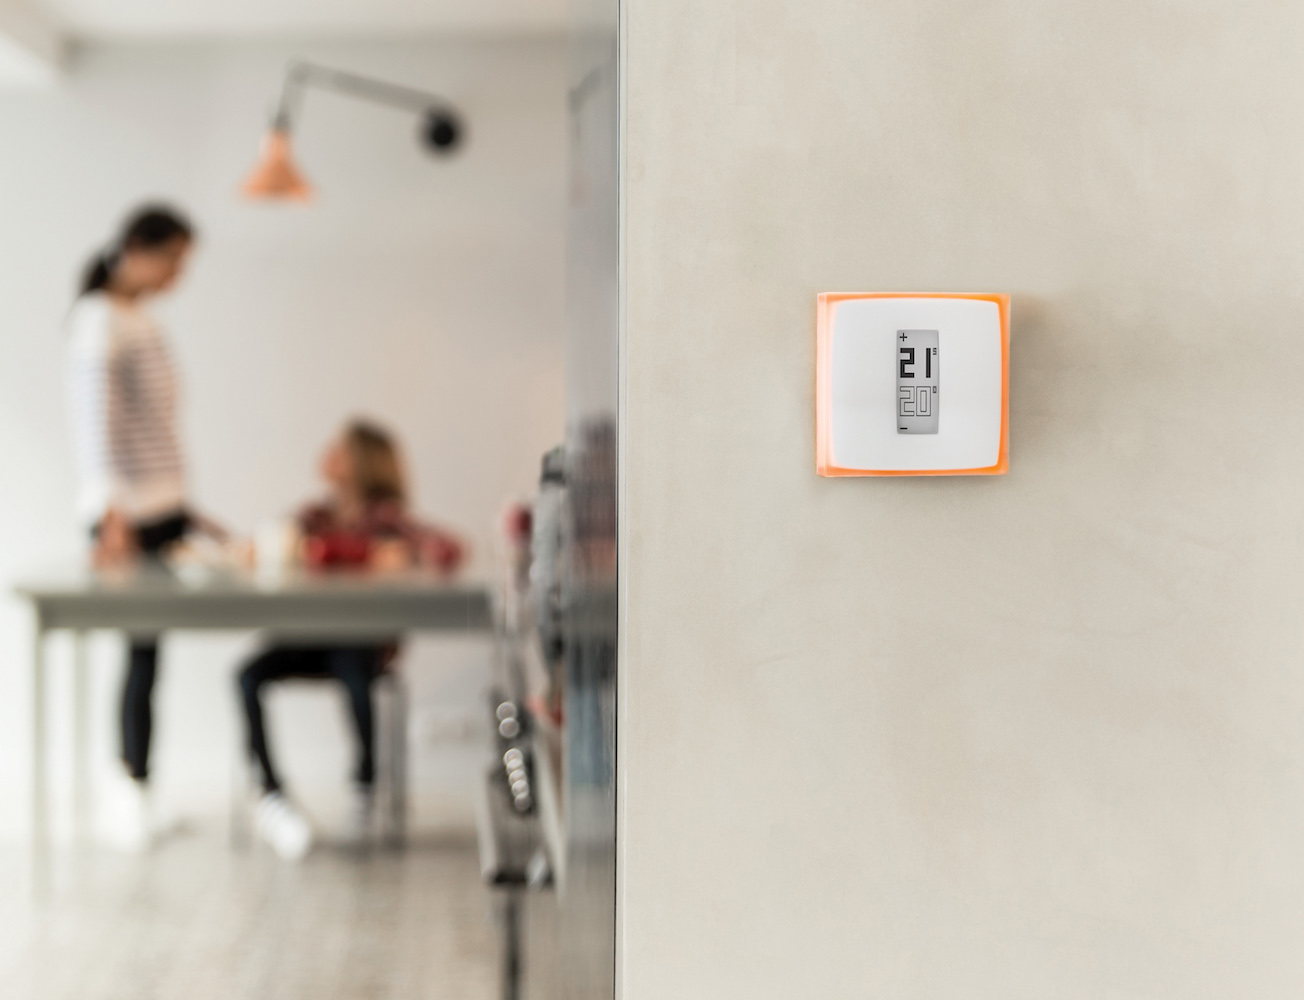 Thermostat+For+Smartphone%2C+Tablets+And+Laptops+By+Netatmo